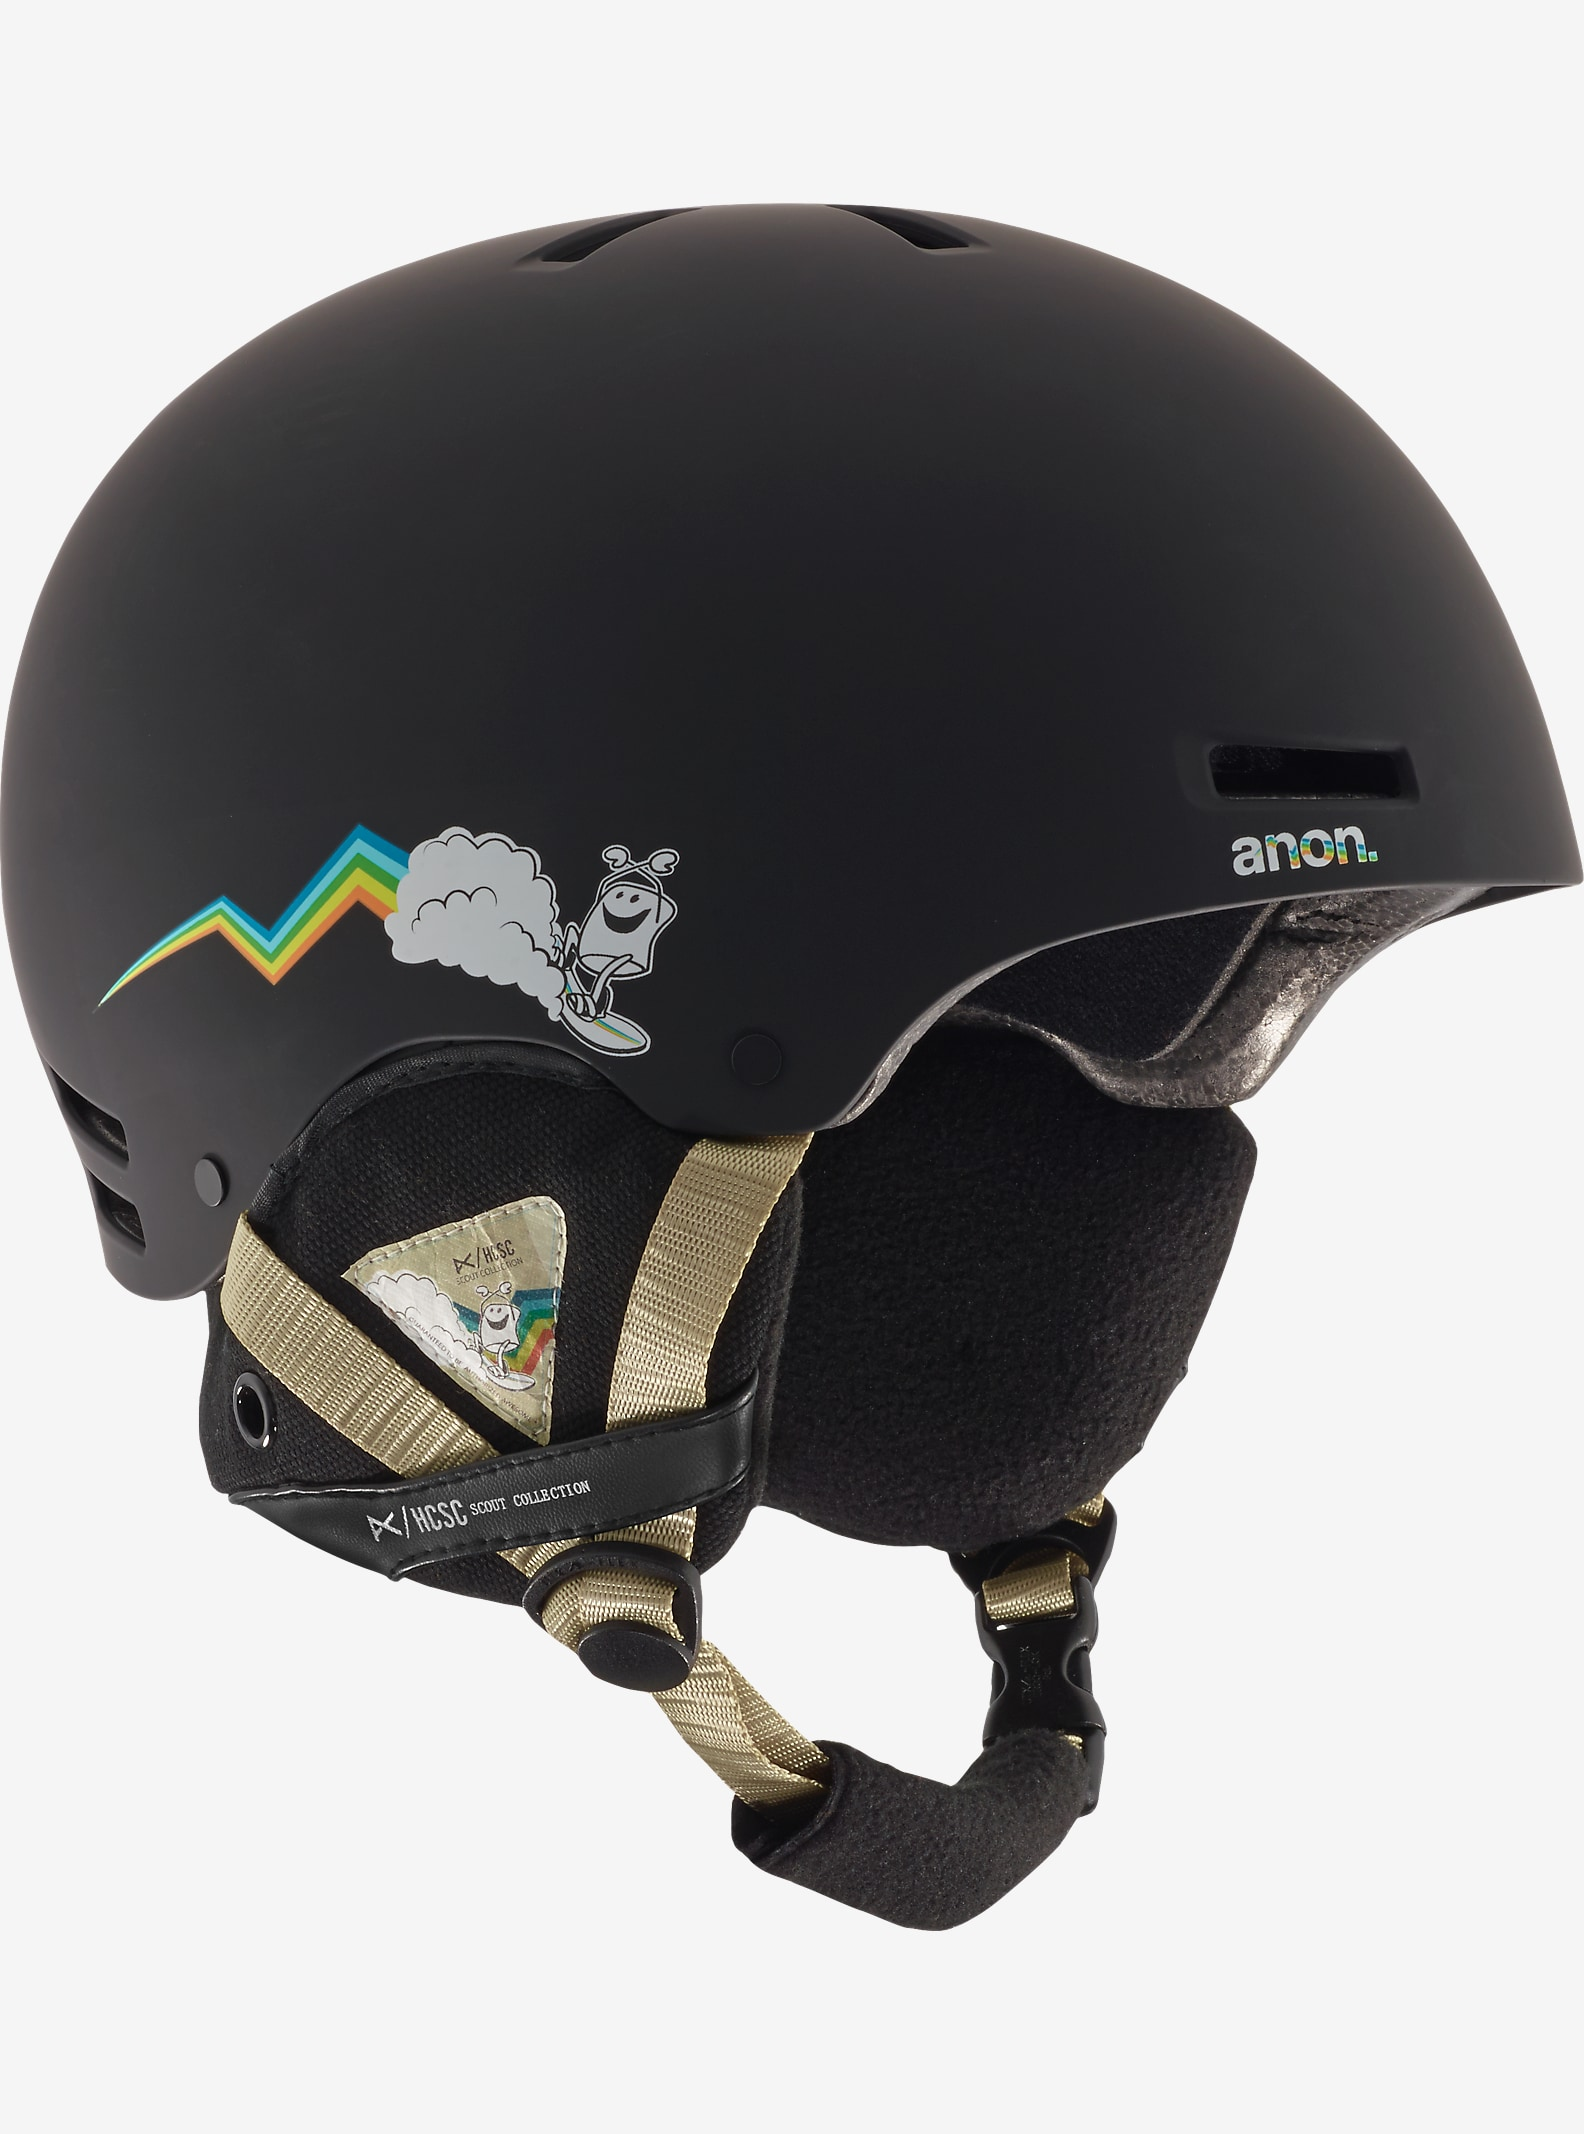 HCSC x anon. Raider Helmet shown in HCSC